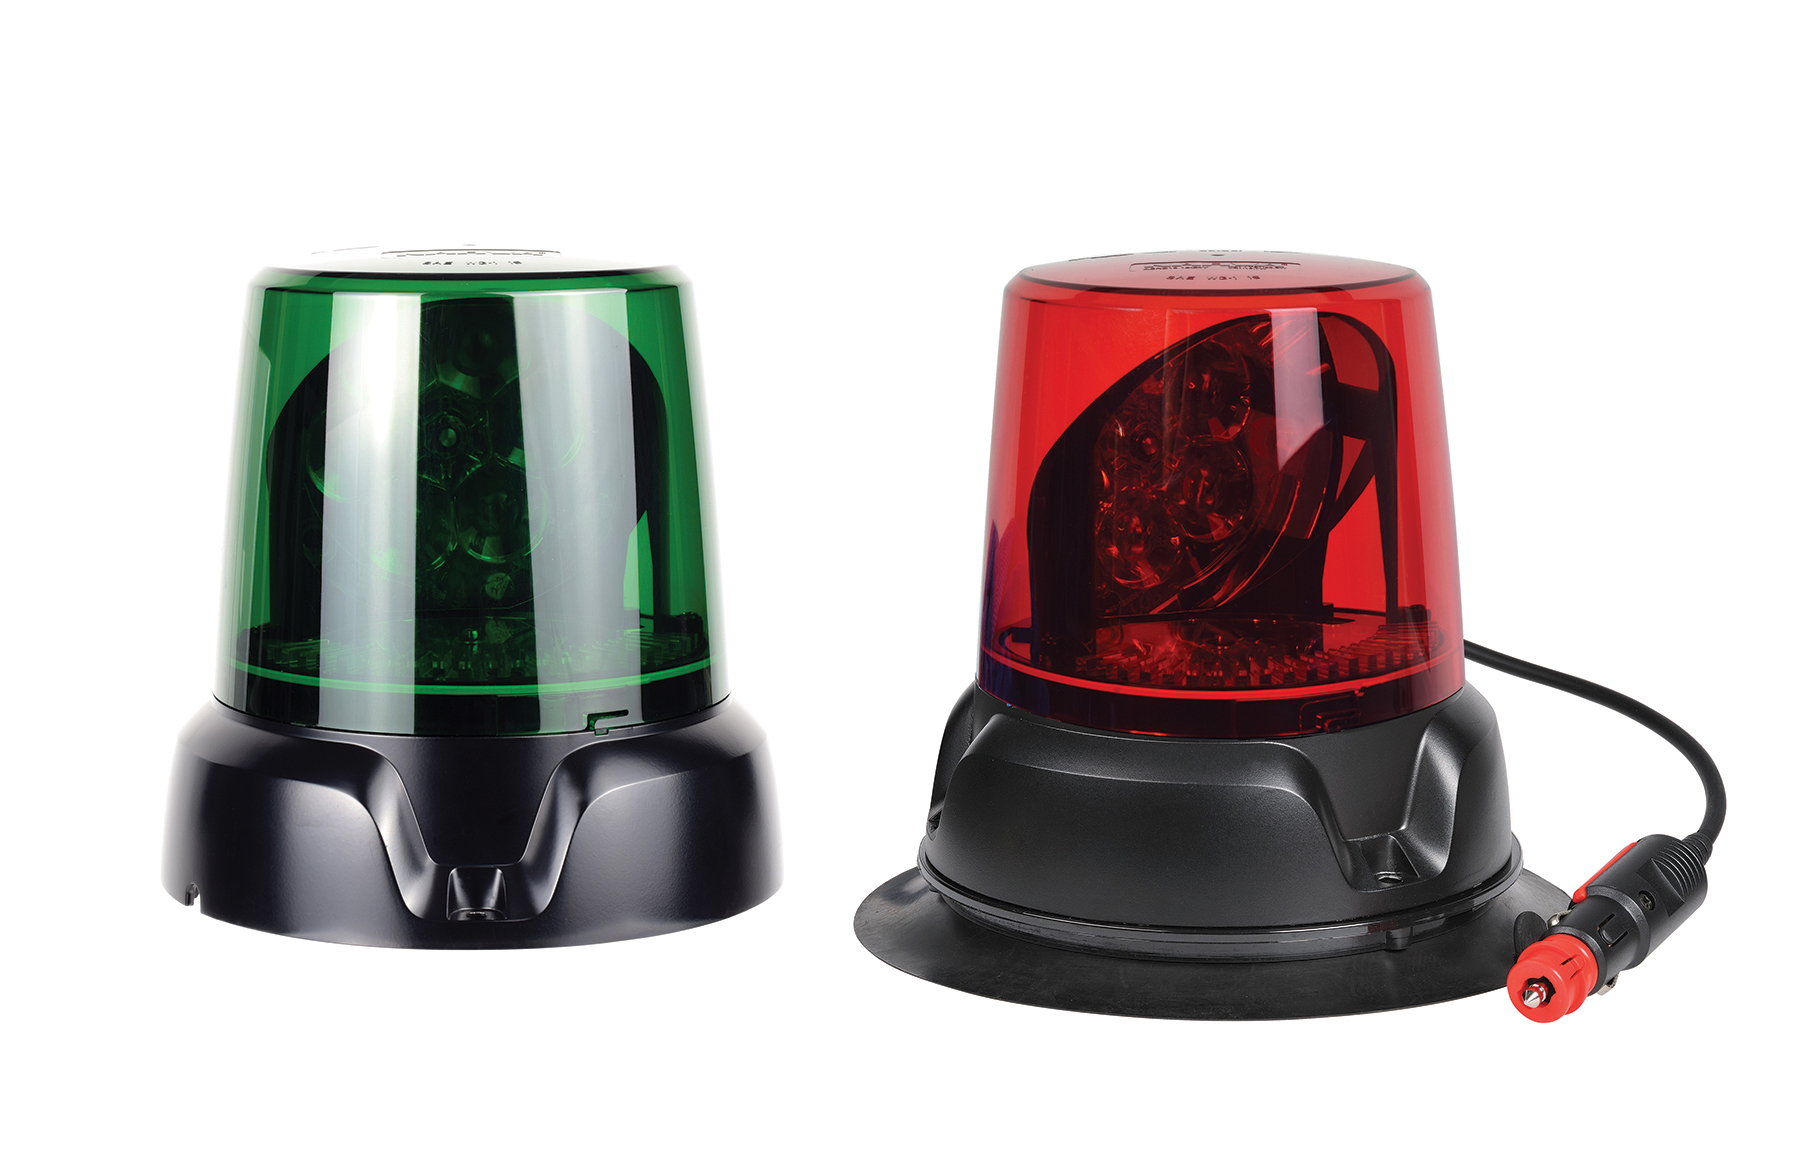 The new lens colour choices include red, blue and green to go with the existing amber variants, while a new branch guard provides additional protection particularly in demanding forestry and emergency service applications, where vehicles may travel off-road and come into contact with low hanging branches.